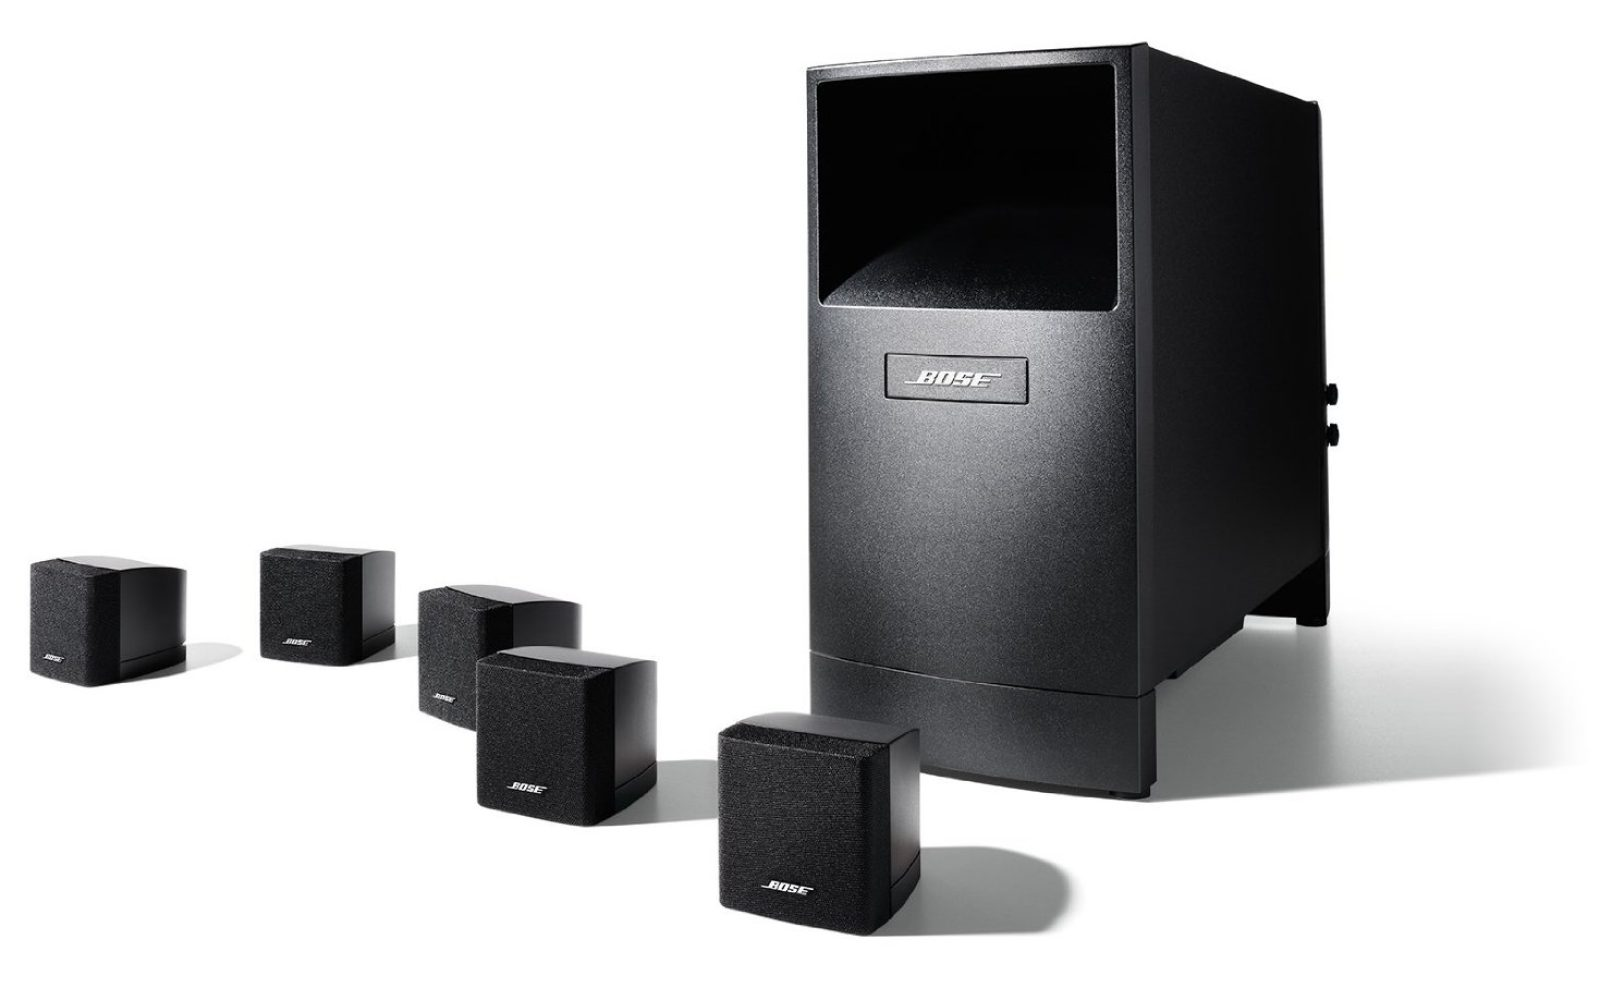 Upgrade your home theater system w/ this Bose Acoustimass 6 speaker